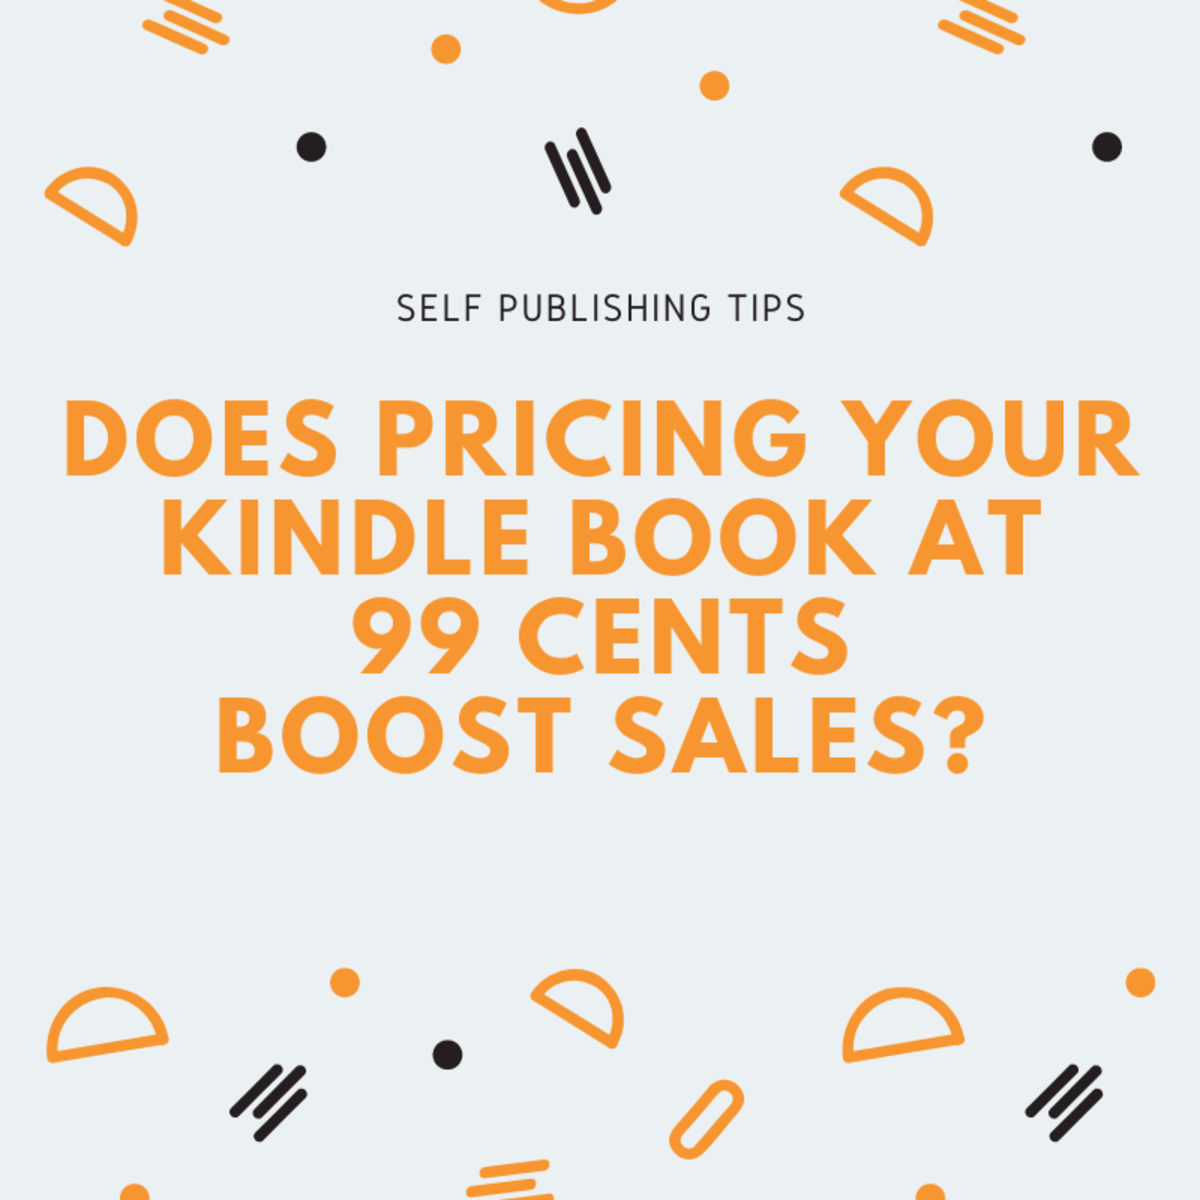 Is pricing your eBook at 99 cents really a good strategy? Learn why you might want to avoid this approach.